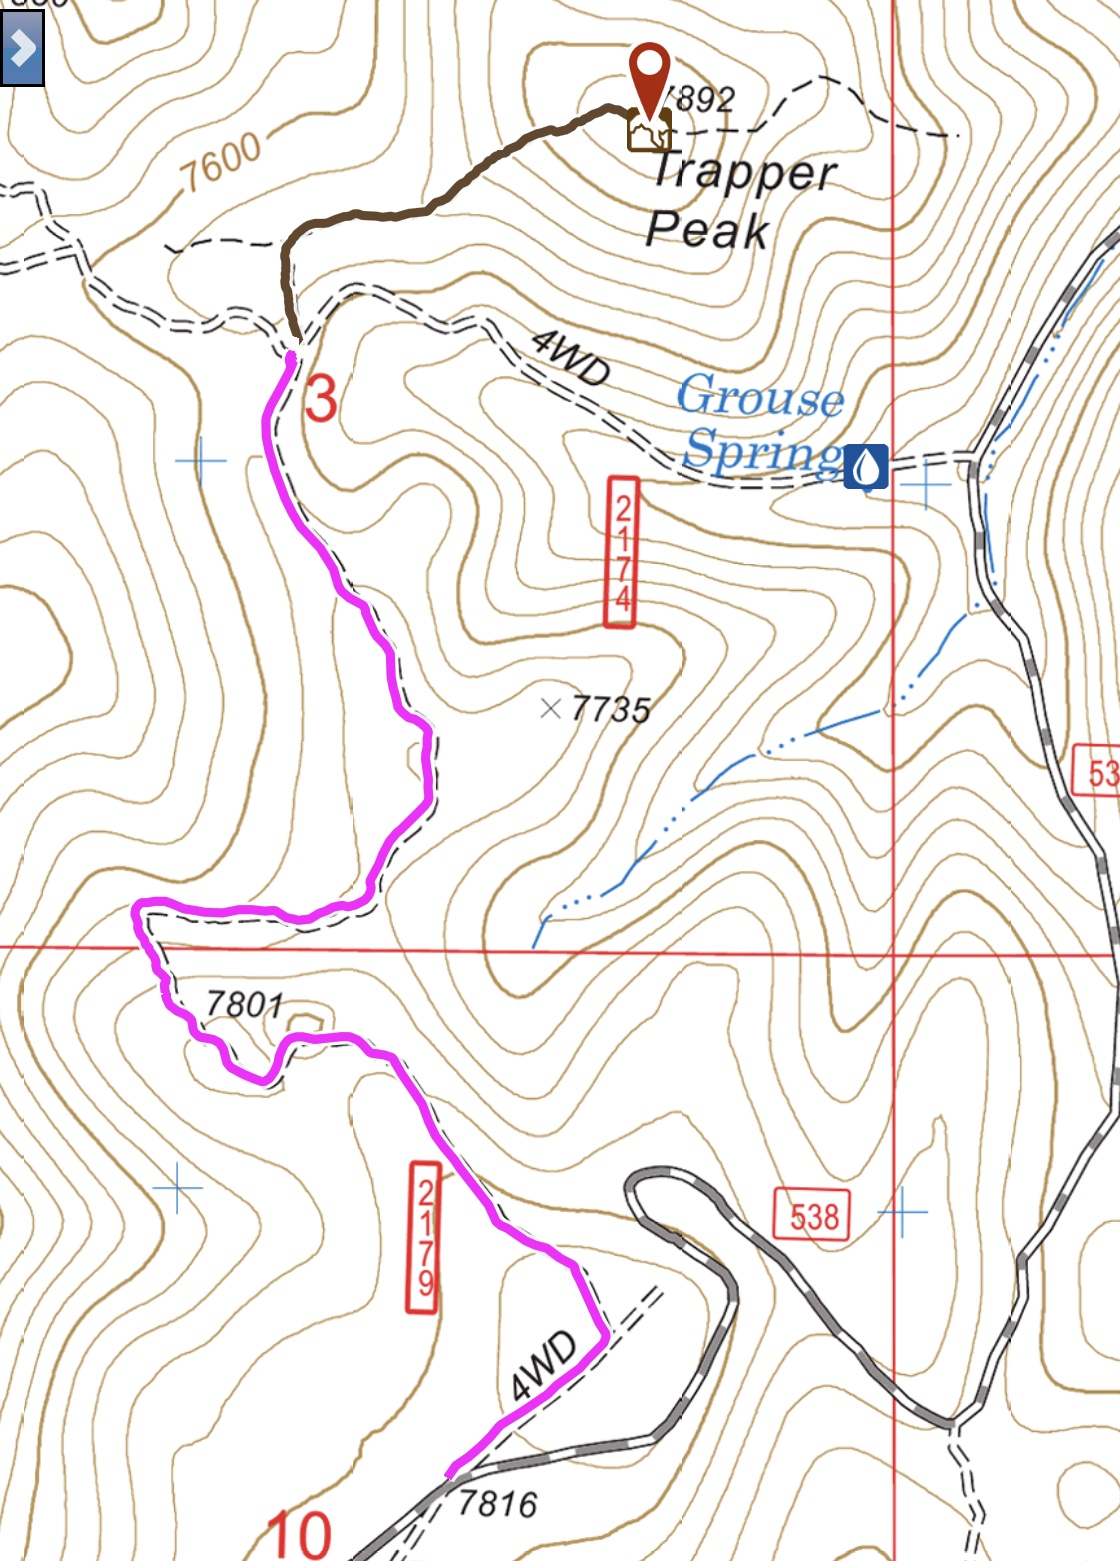 The road approach from FS-538 is shown in pink and the hike in black.